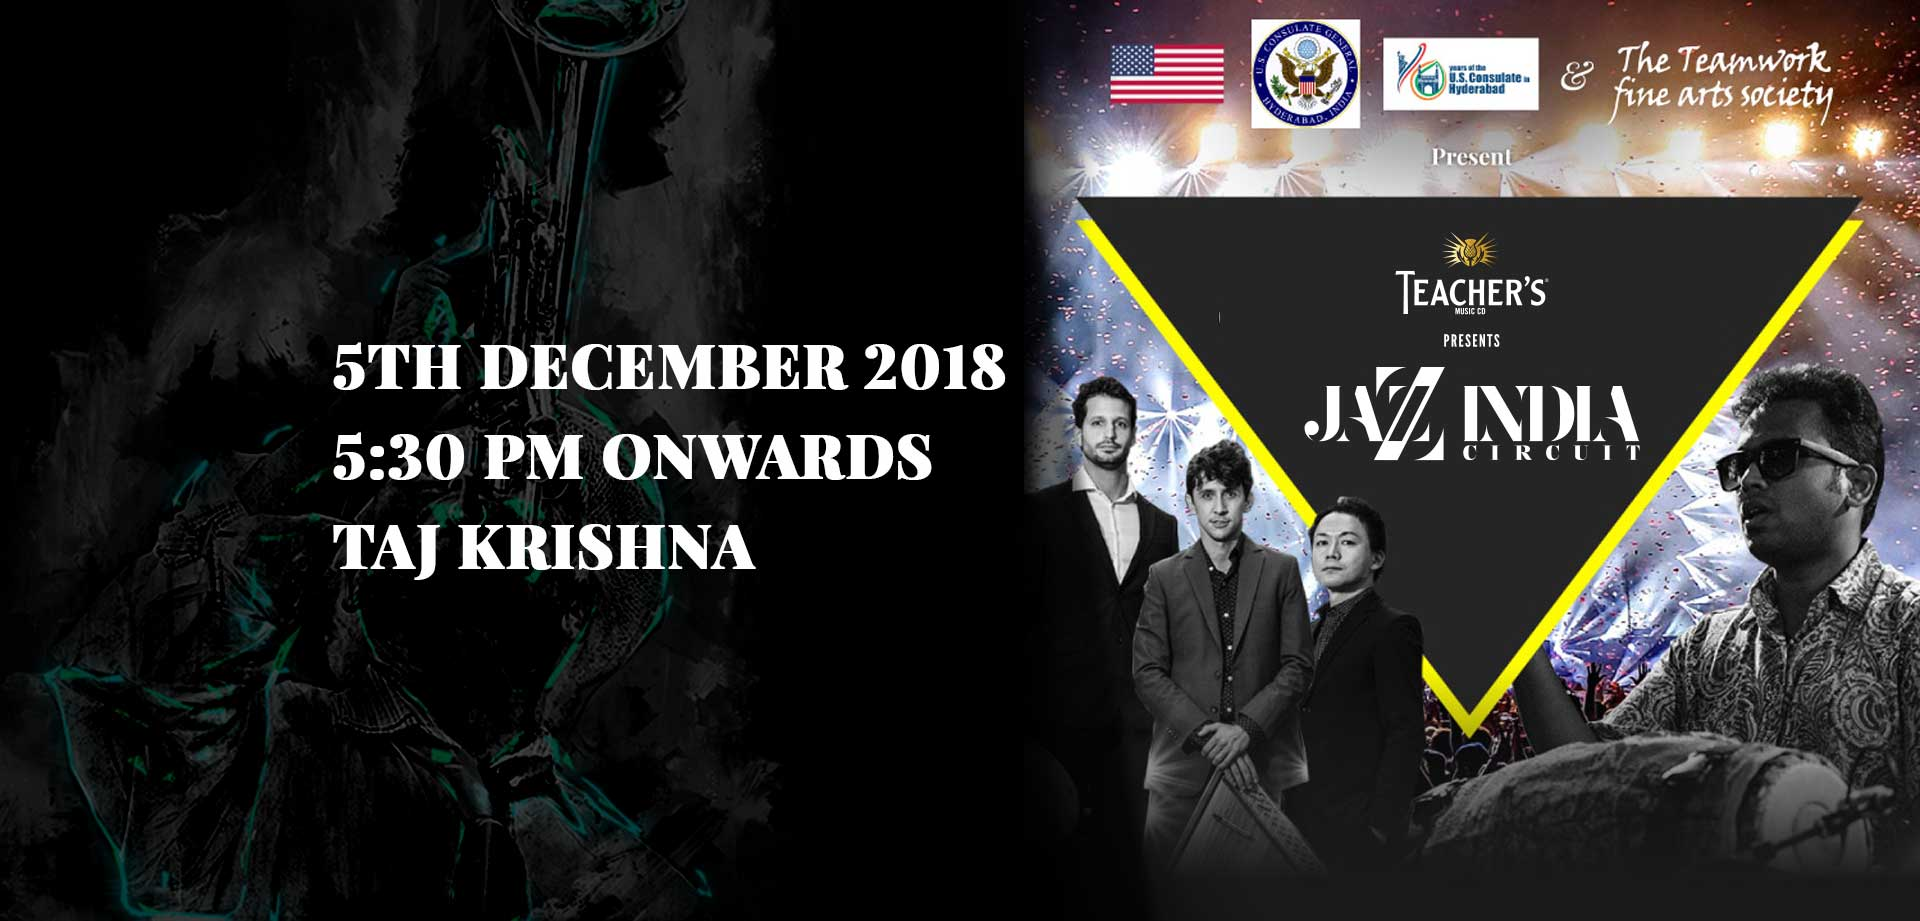 Jazz India Circuit Tour with House of Water in Hyderabad